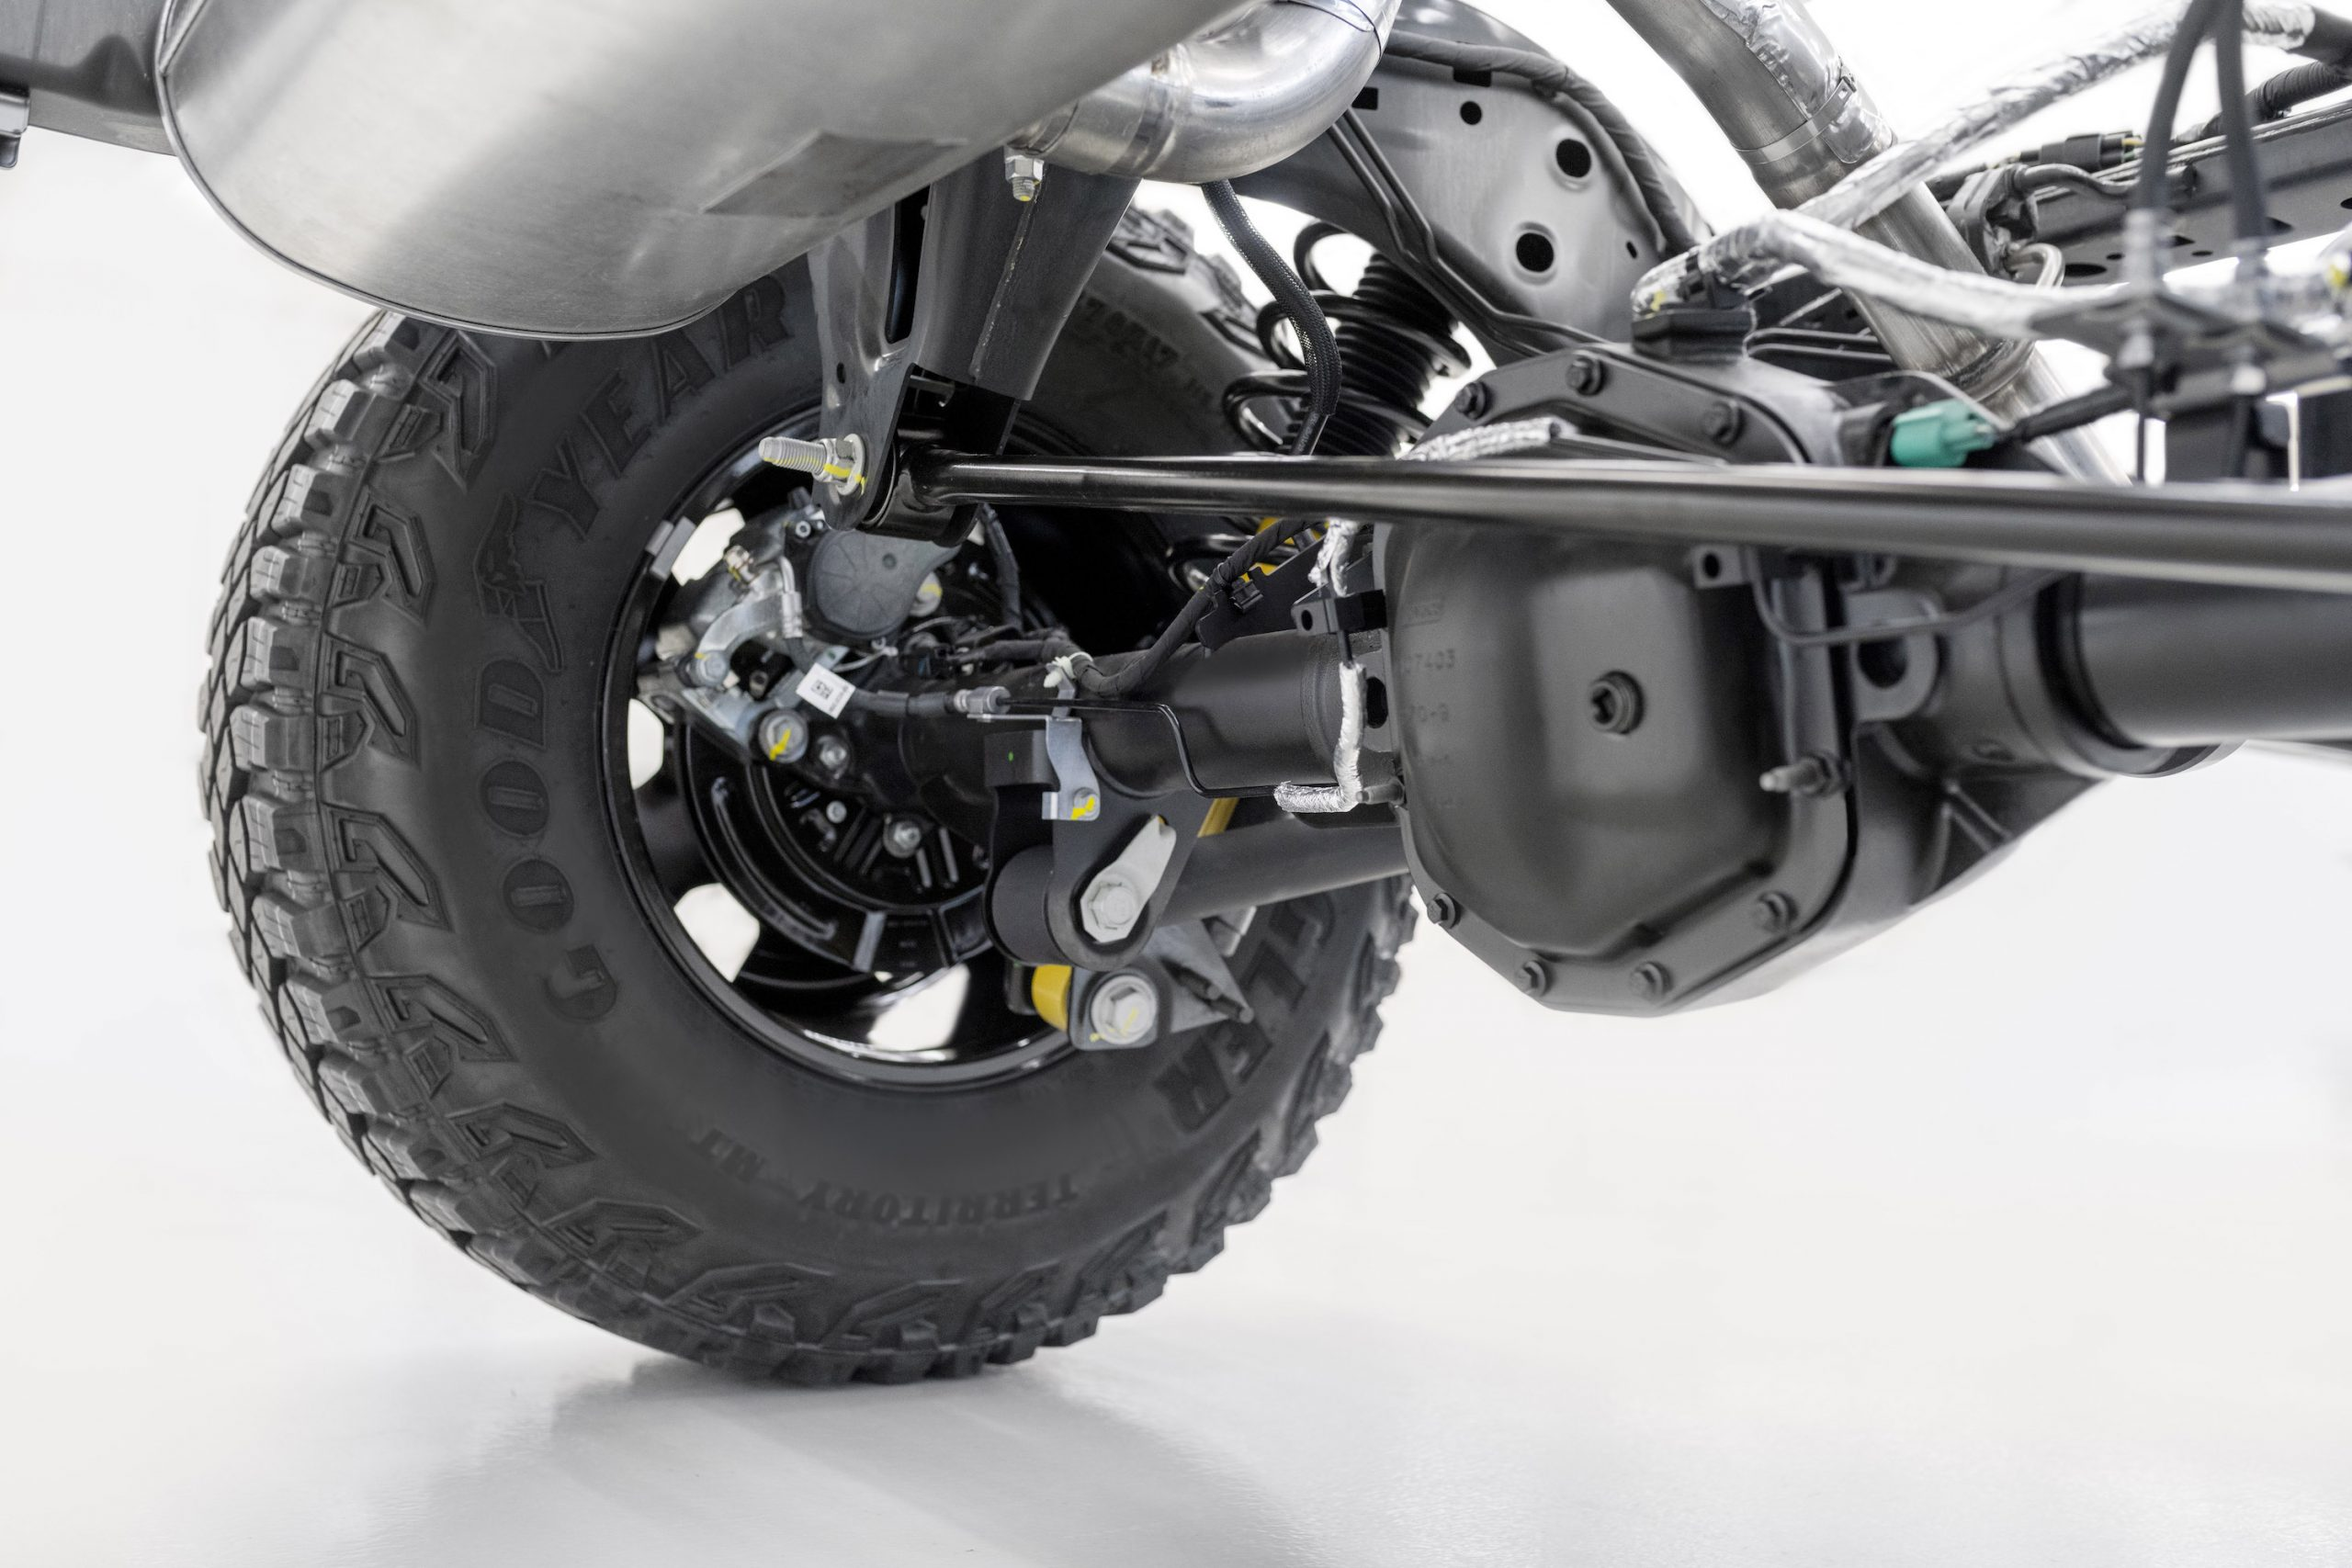 2021 Ford Bronco Rear Axle and Wheel